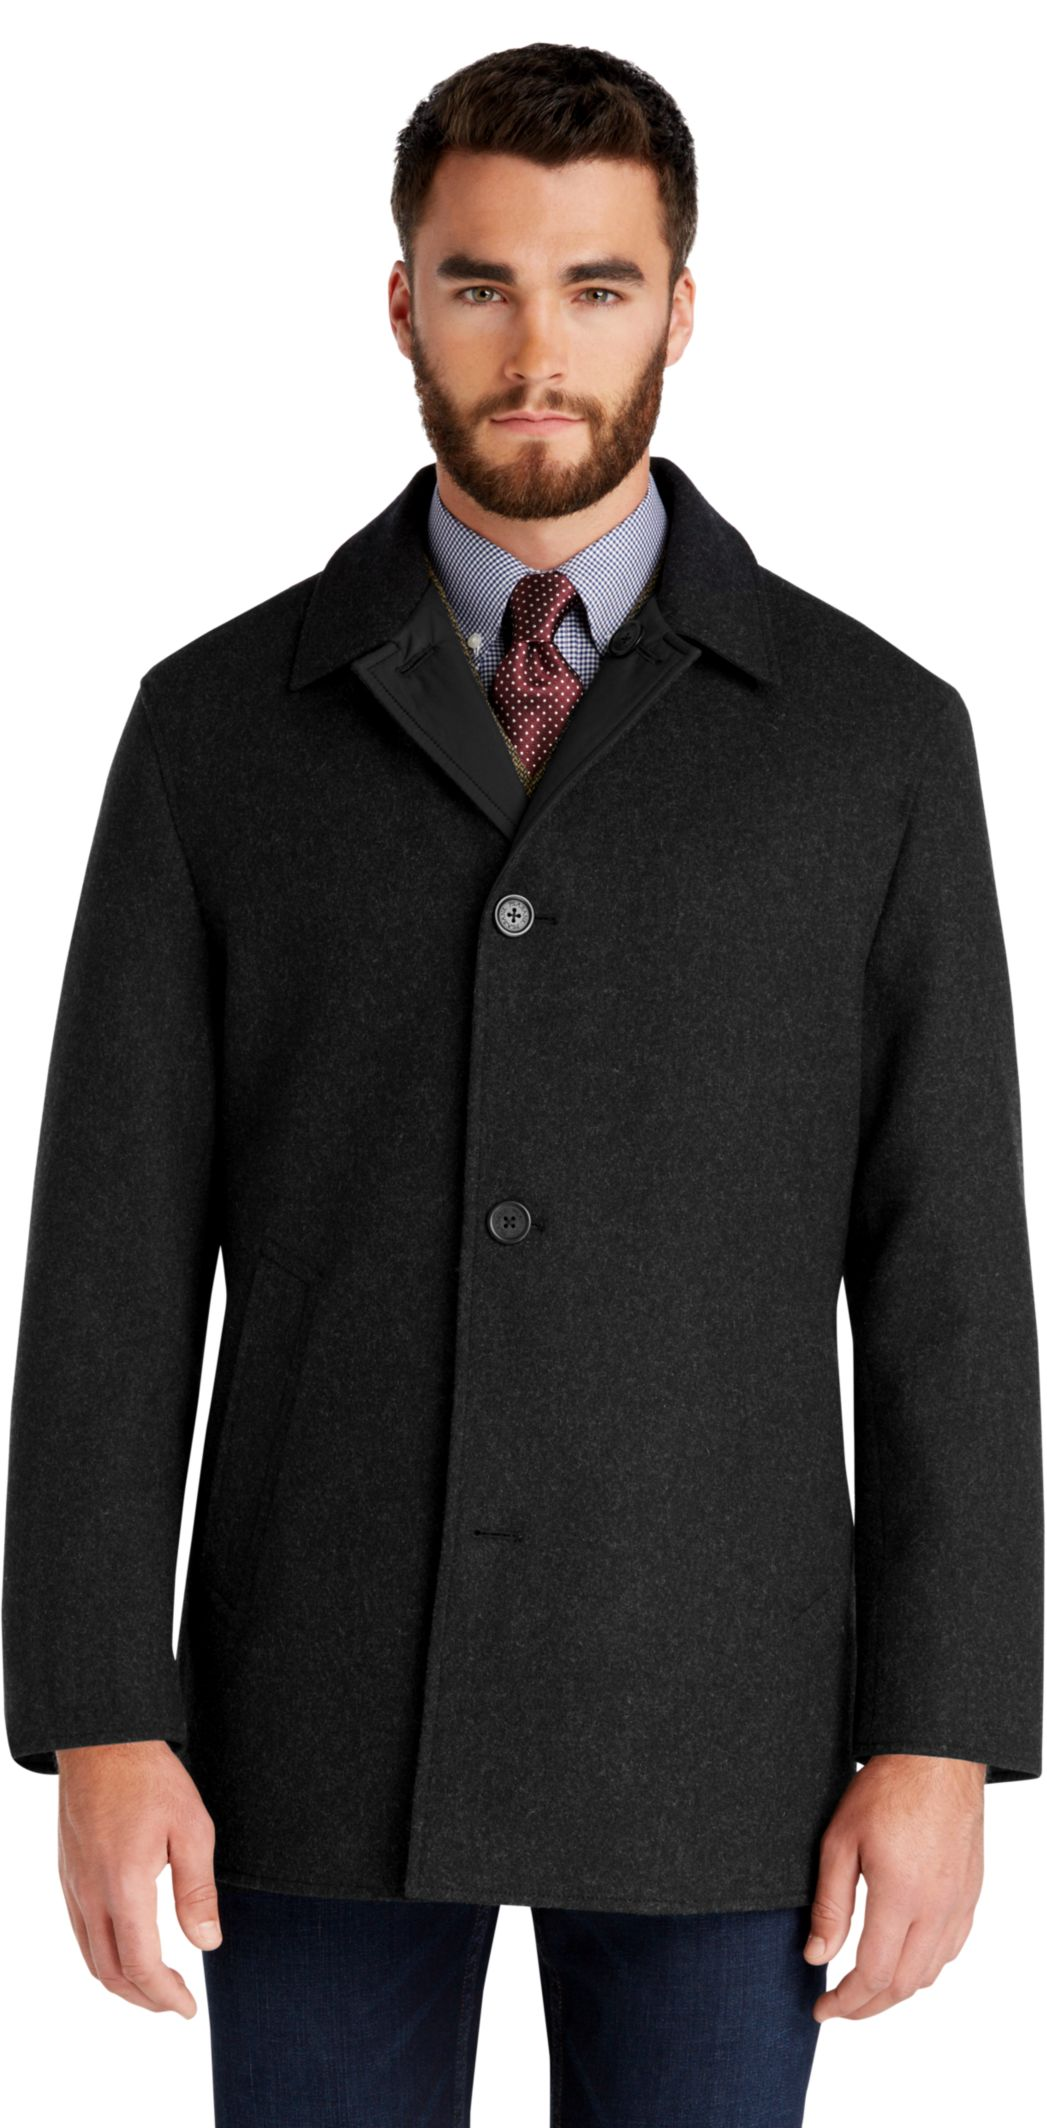 Jos. A. Bank Men's 3/4 Length Reversible Coat $69 pick up at Jos. A. Bank online deal